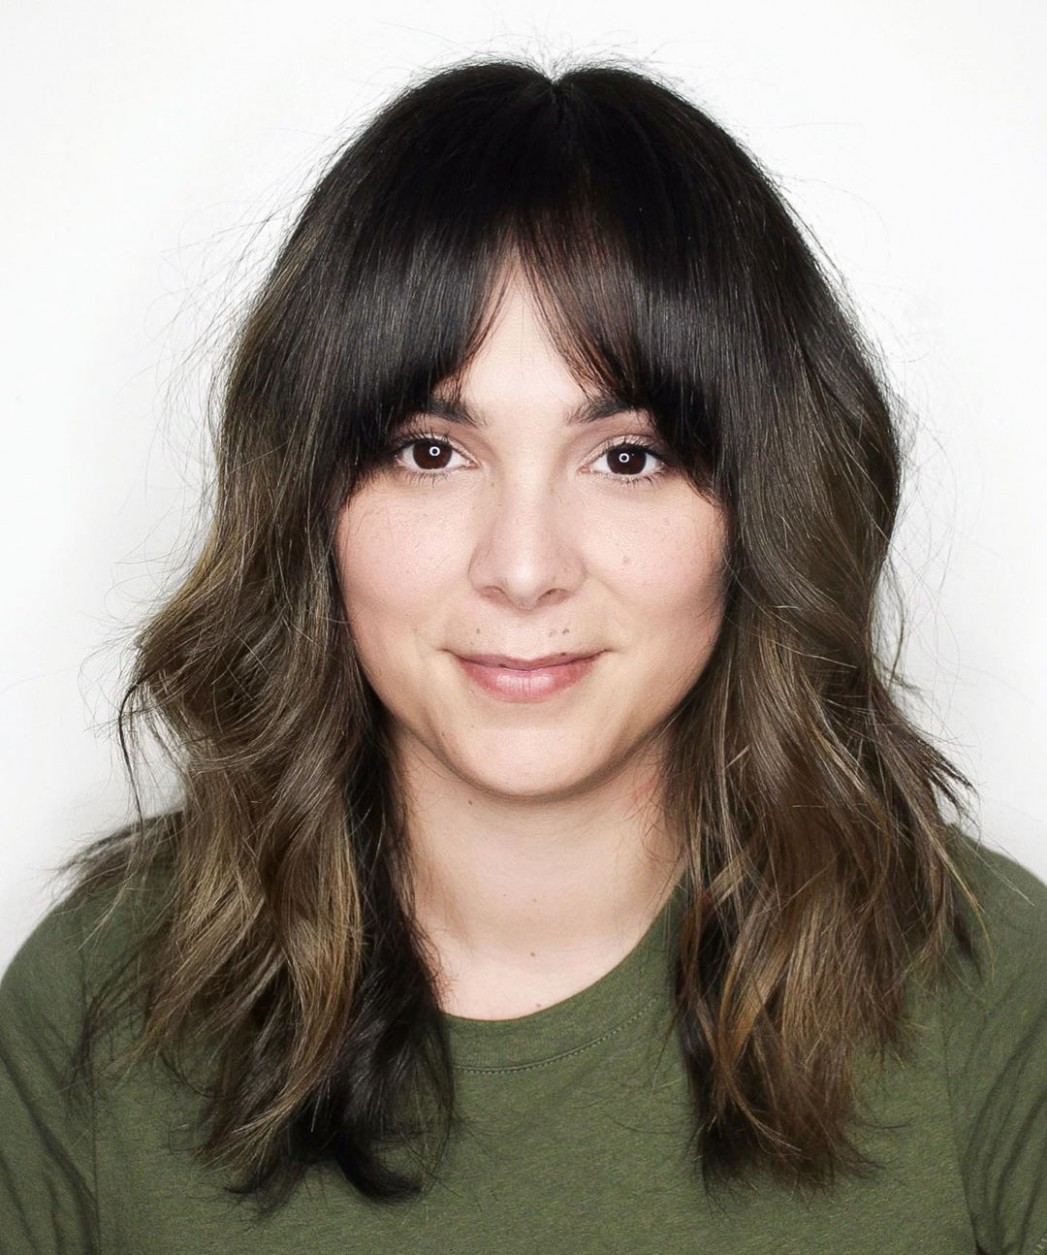 11 Most Trendy And Flattering Bangs For Round Faces In 11 Hadviser Types Of Bangs For Round Faces